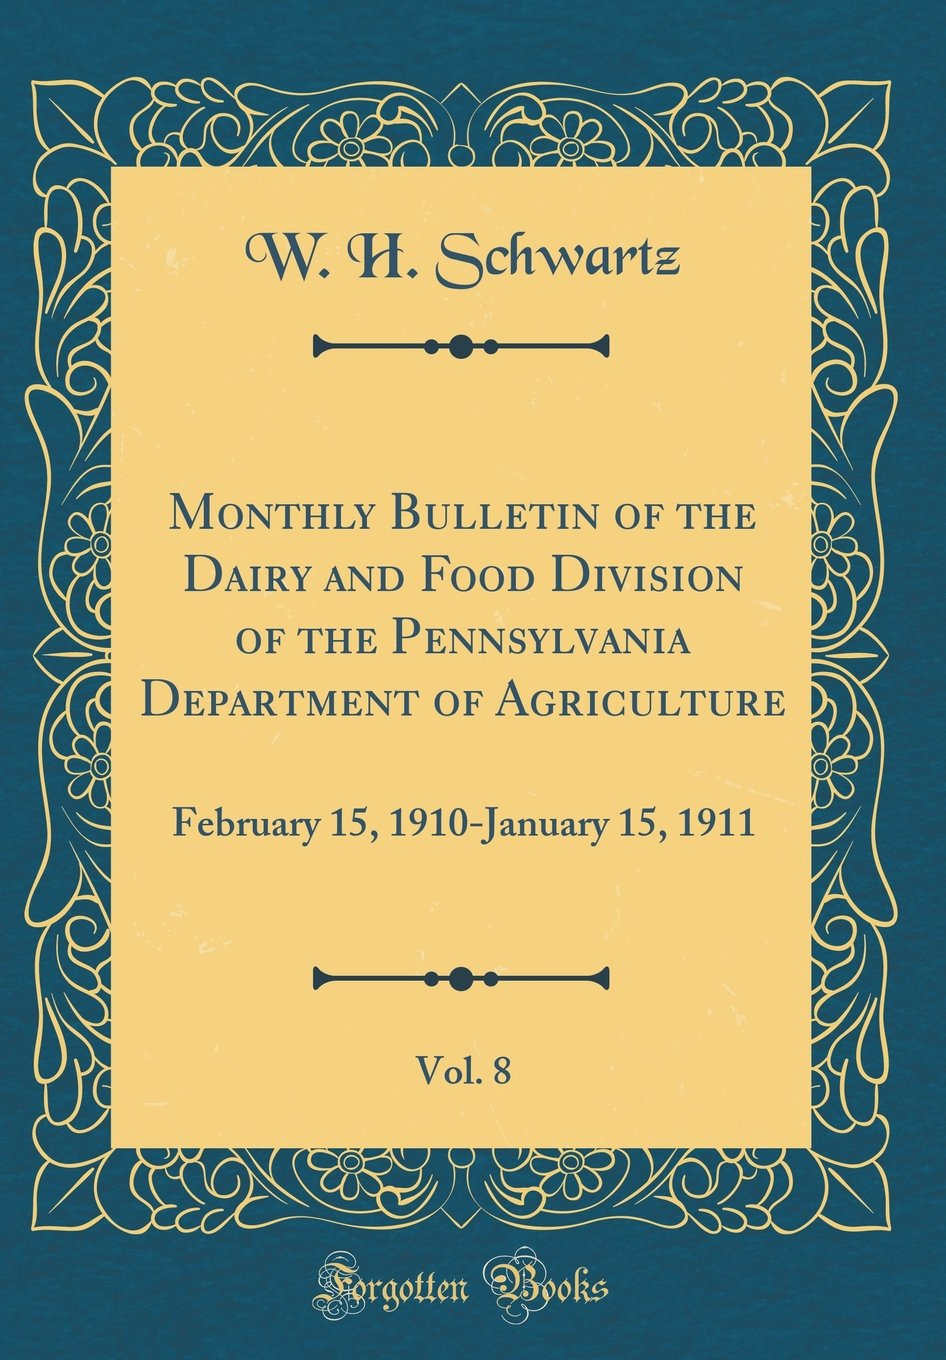 Monthly Bulletin of the Dairy and Food Division of the Pennsylvania Department of Agriculture, Vol. 8: February 15, 1910-January 15, 1911 (Classic Reprint) ebook